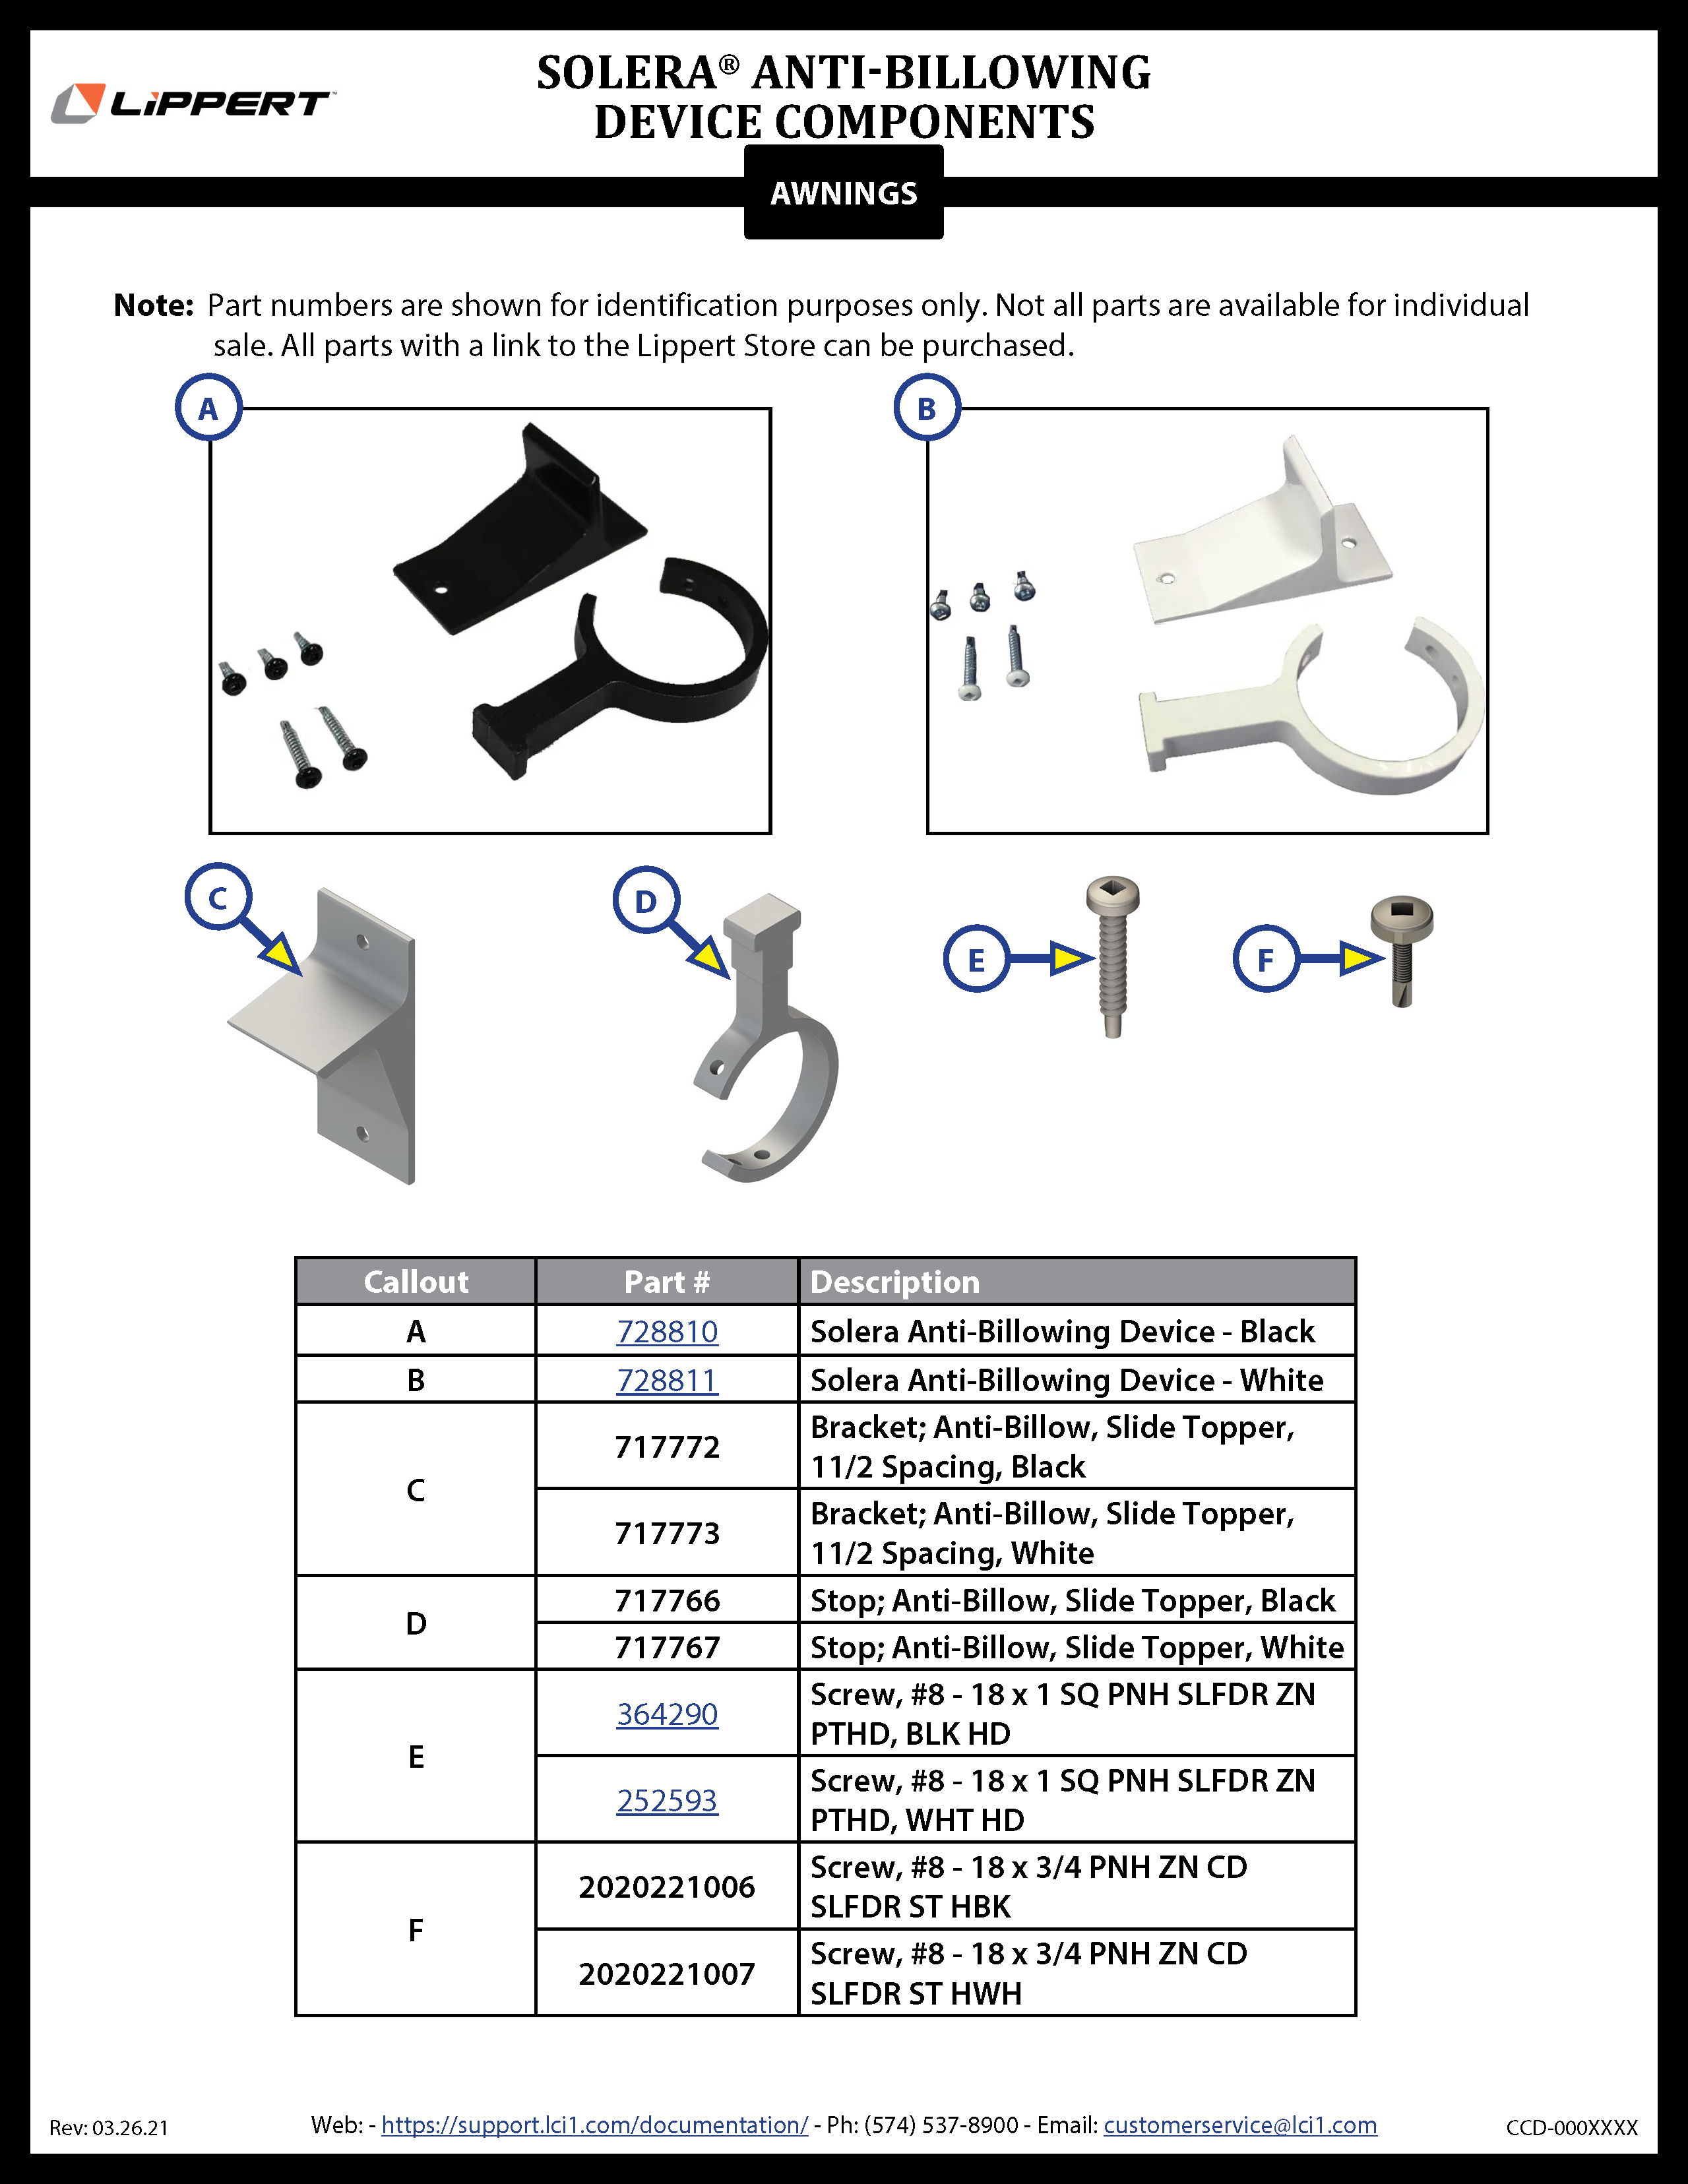 Solera® Anti-Billowing Device Components